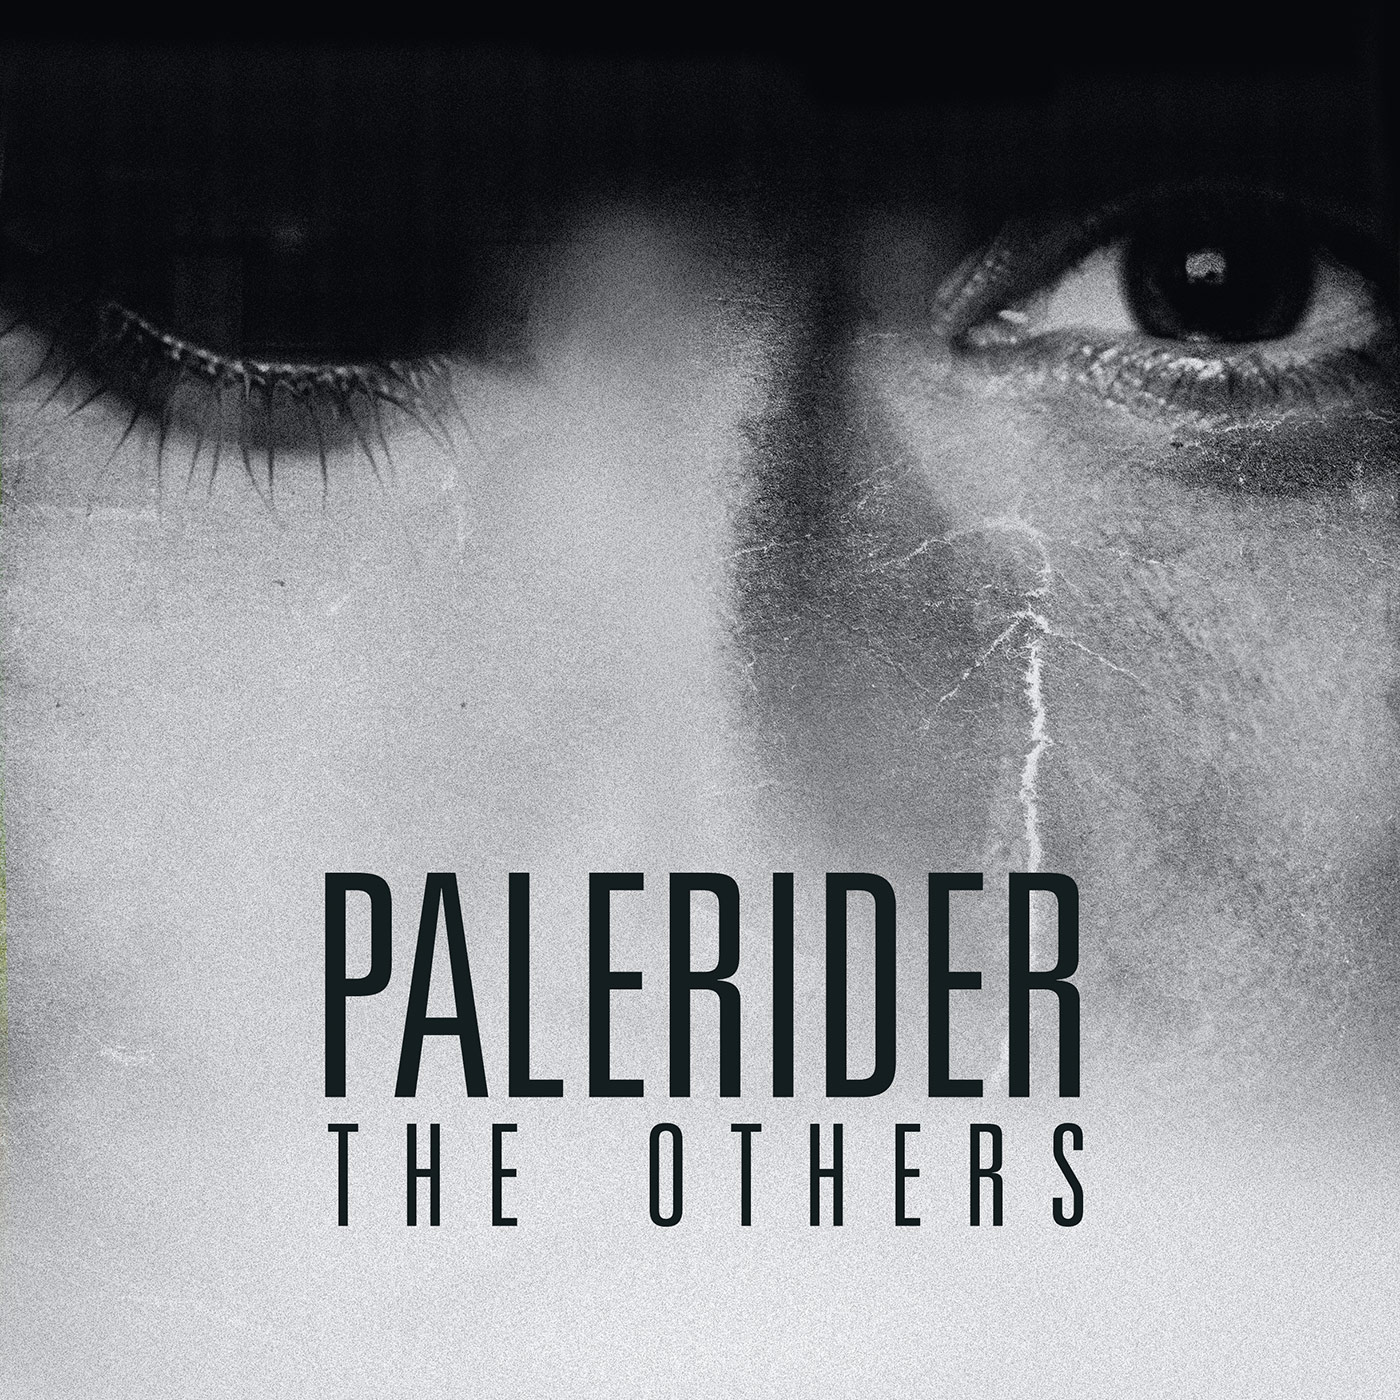 Palerider - The Others